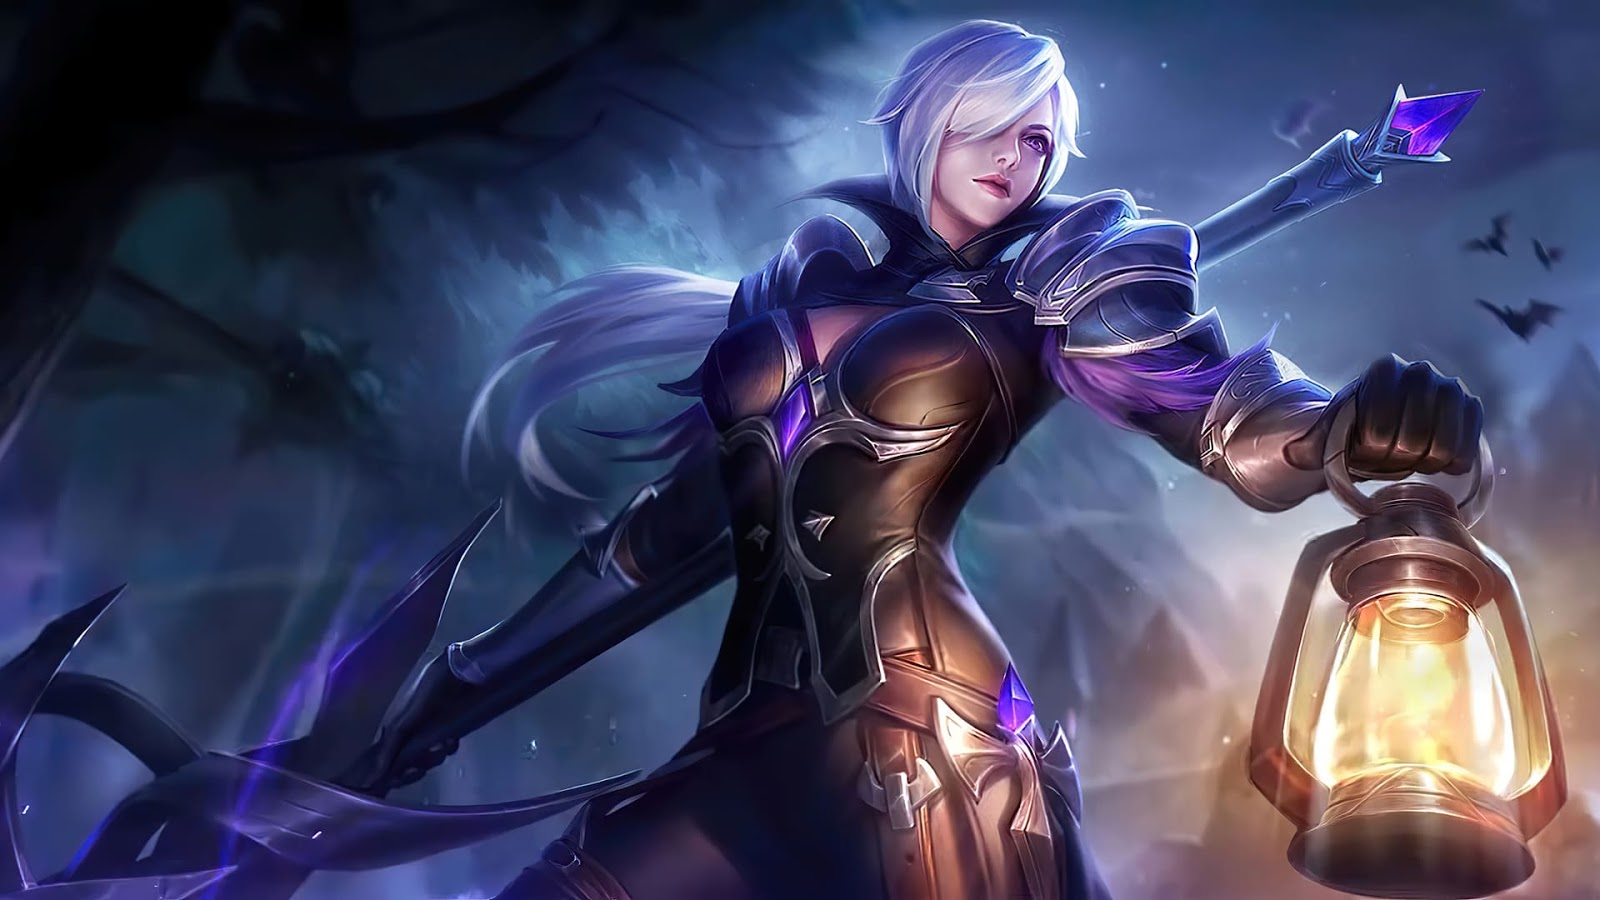 Wallpaper Silvanna Midnight Justice Skin Mobile Legends HD for PC